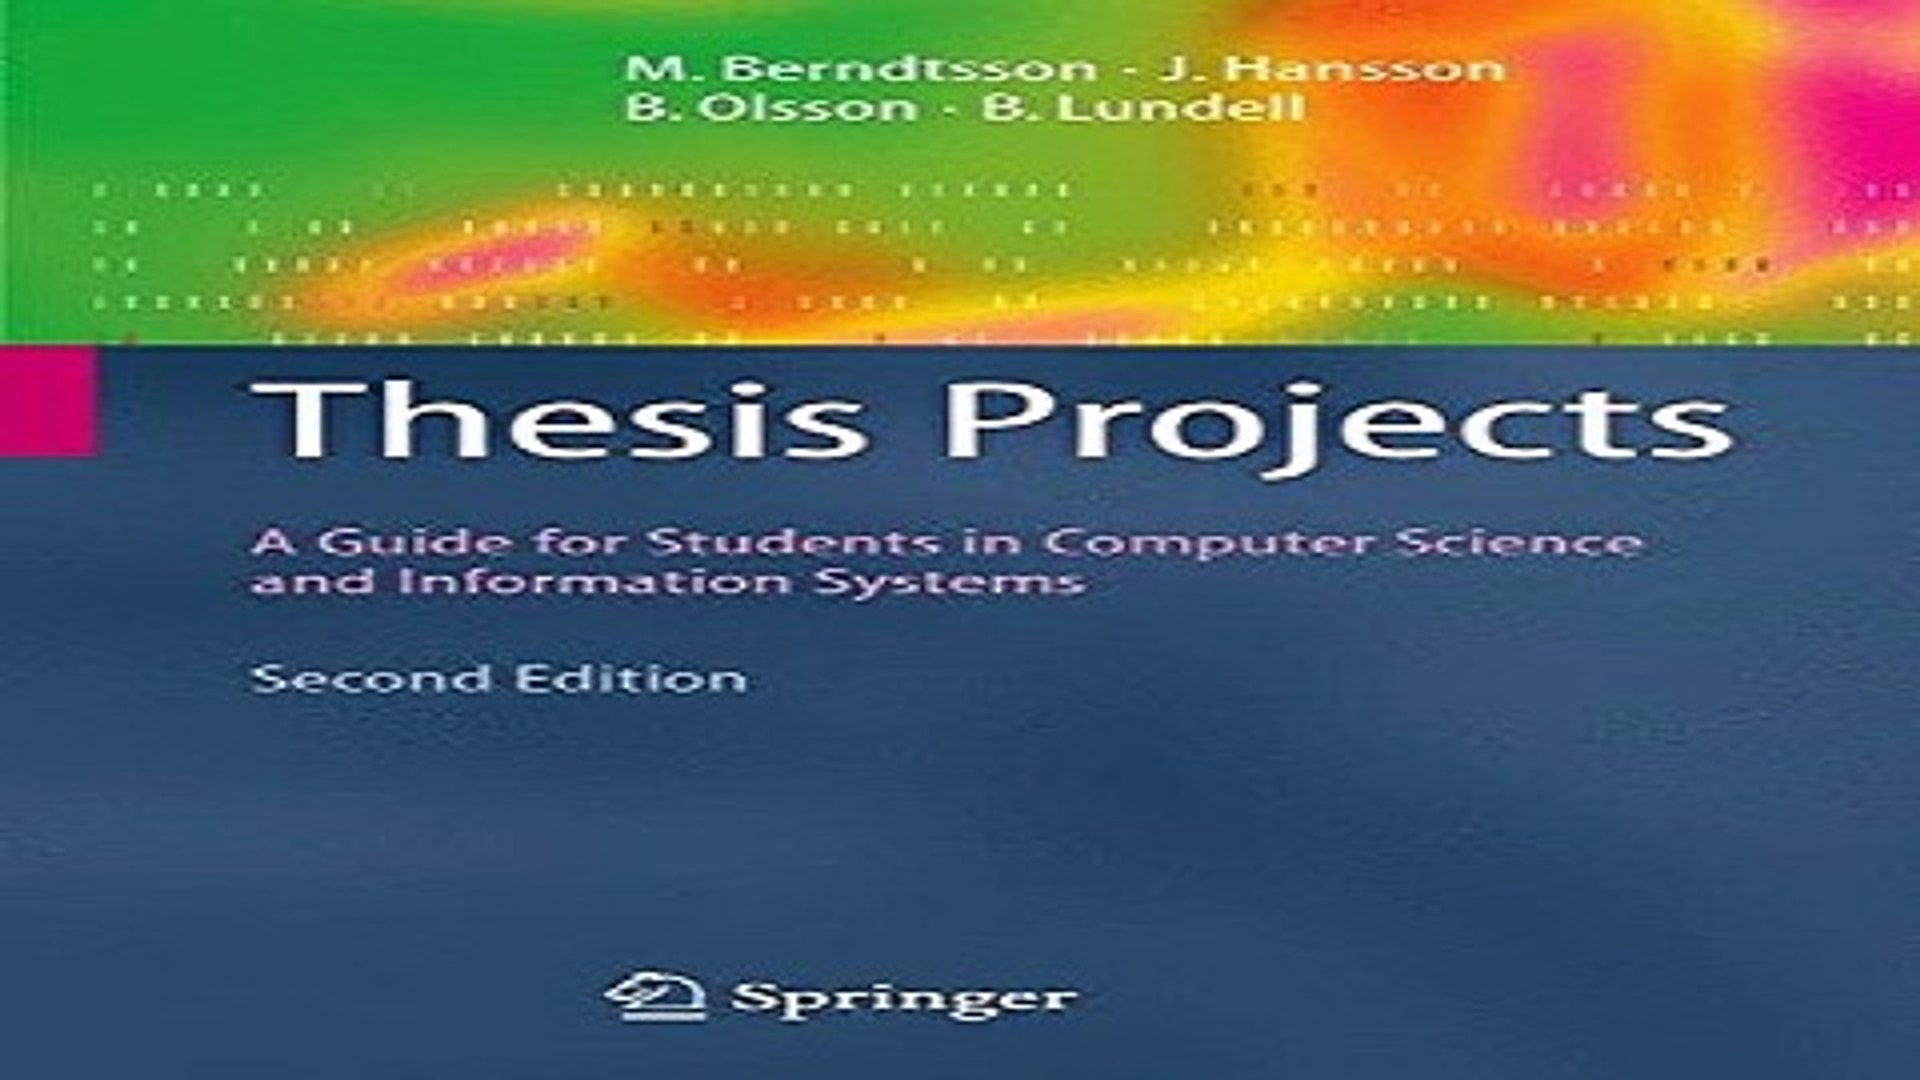 Projects thesis computer science custom paper writing for hire usa